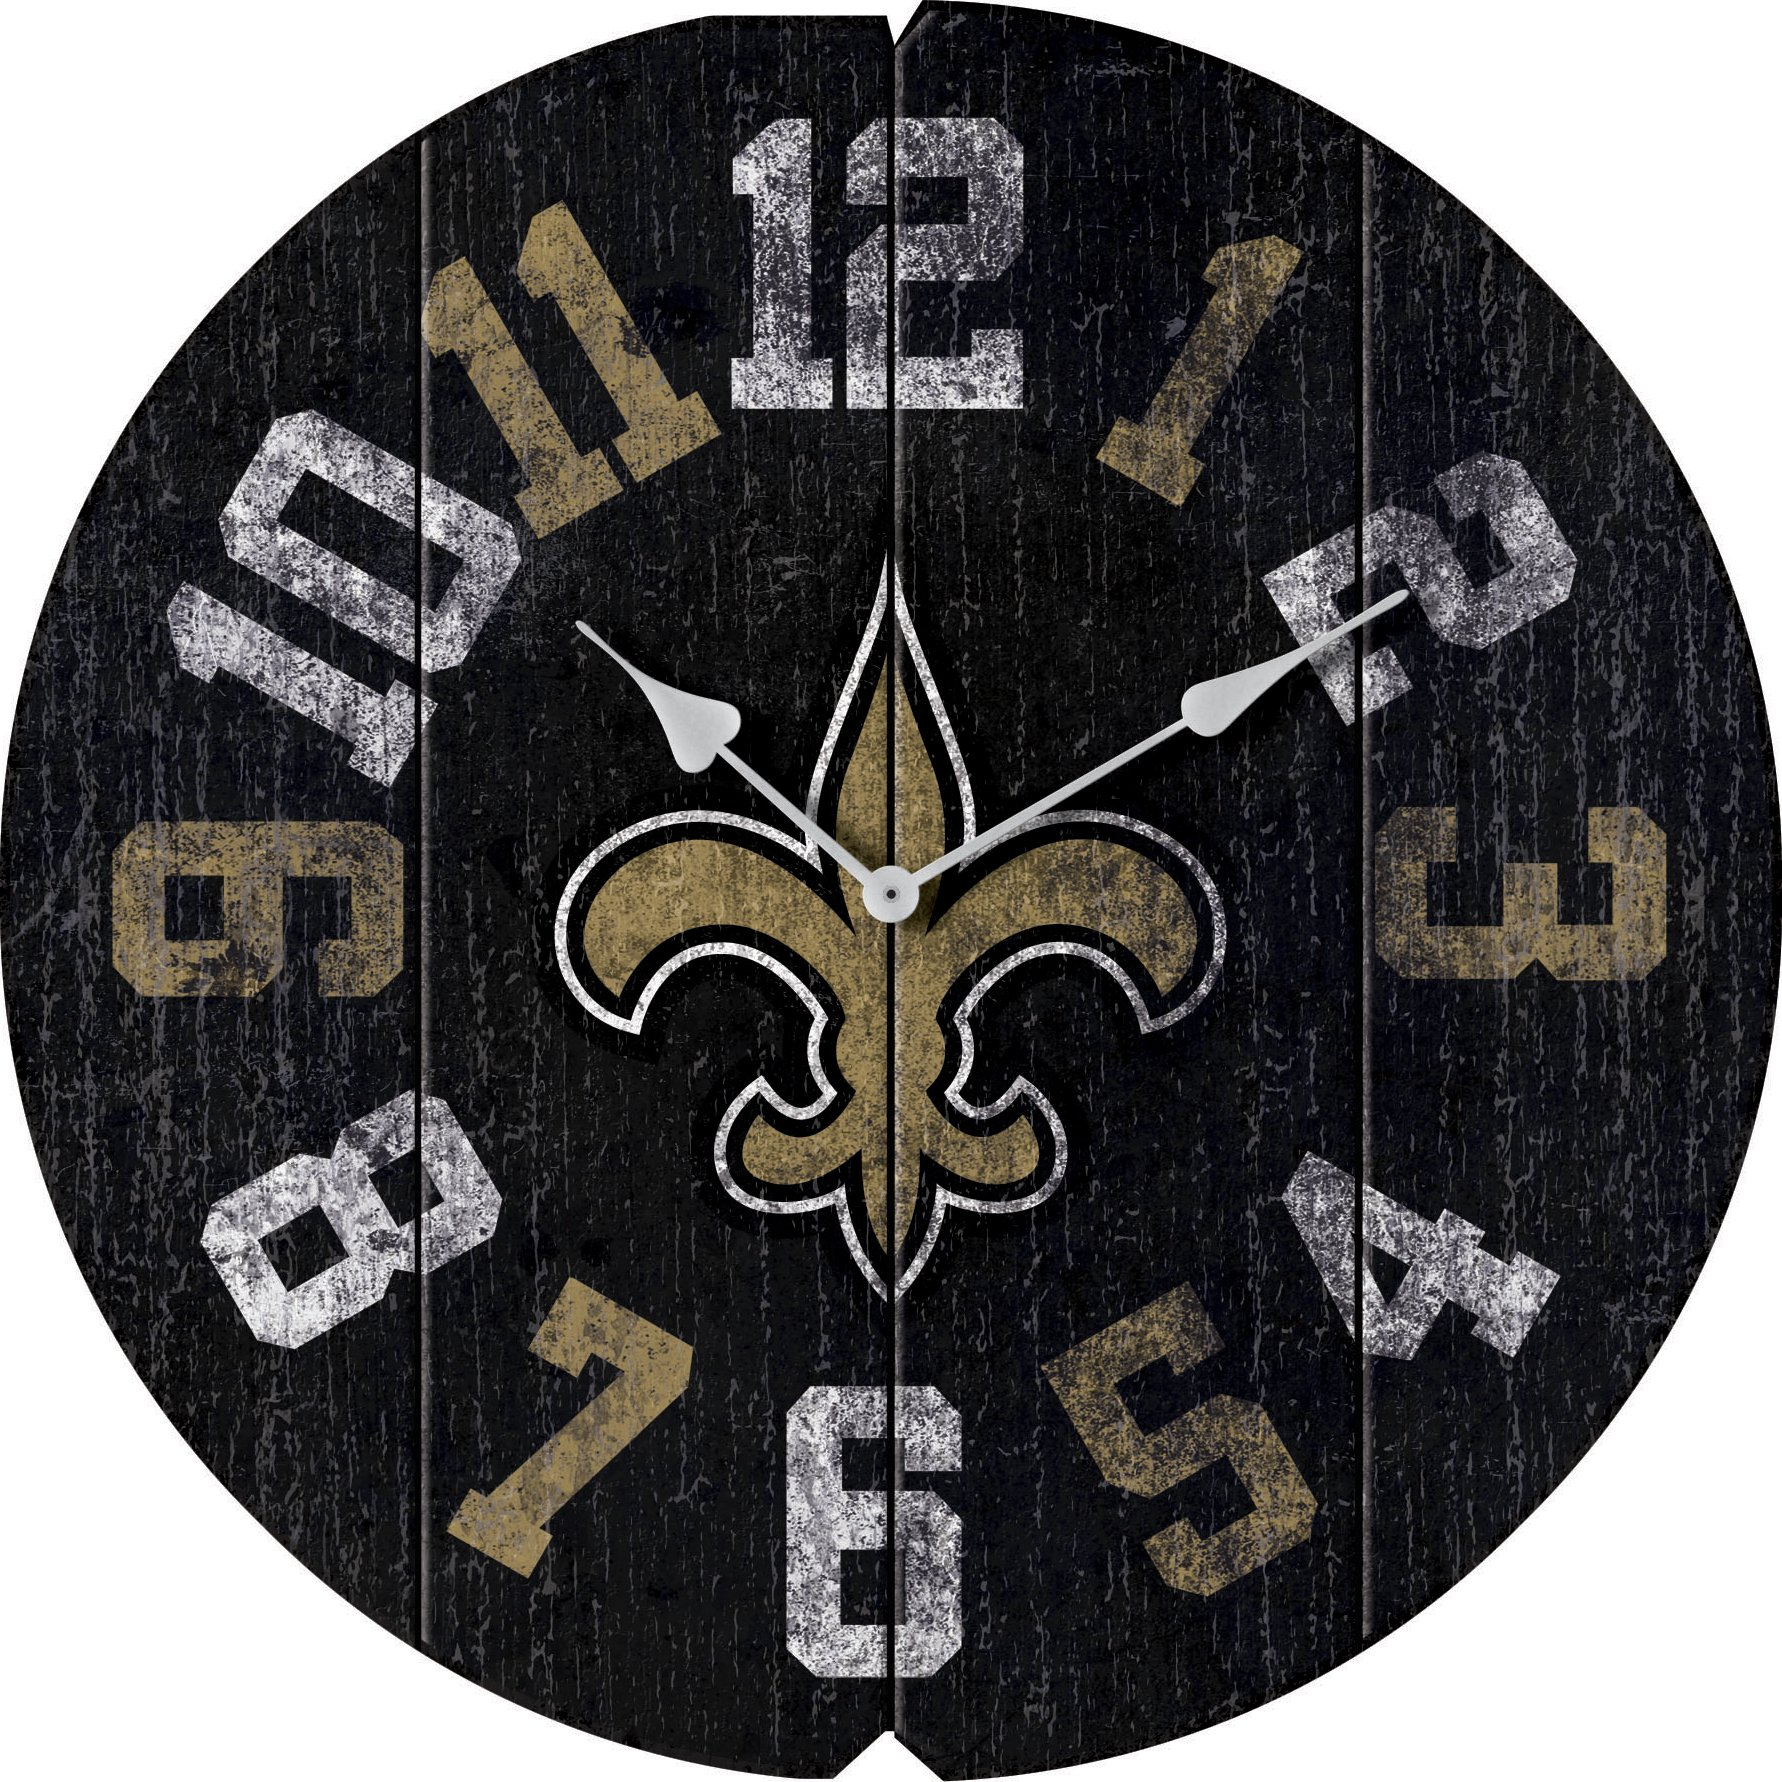 Imperial Officially Licensed NFL Merchandise: Vintage Round Clock, New Orleans Saints by Imperial